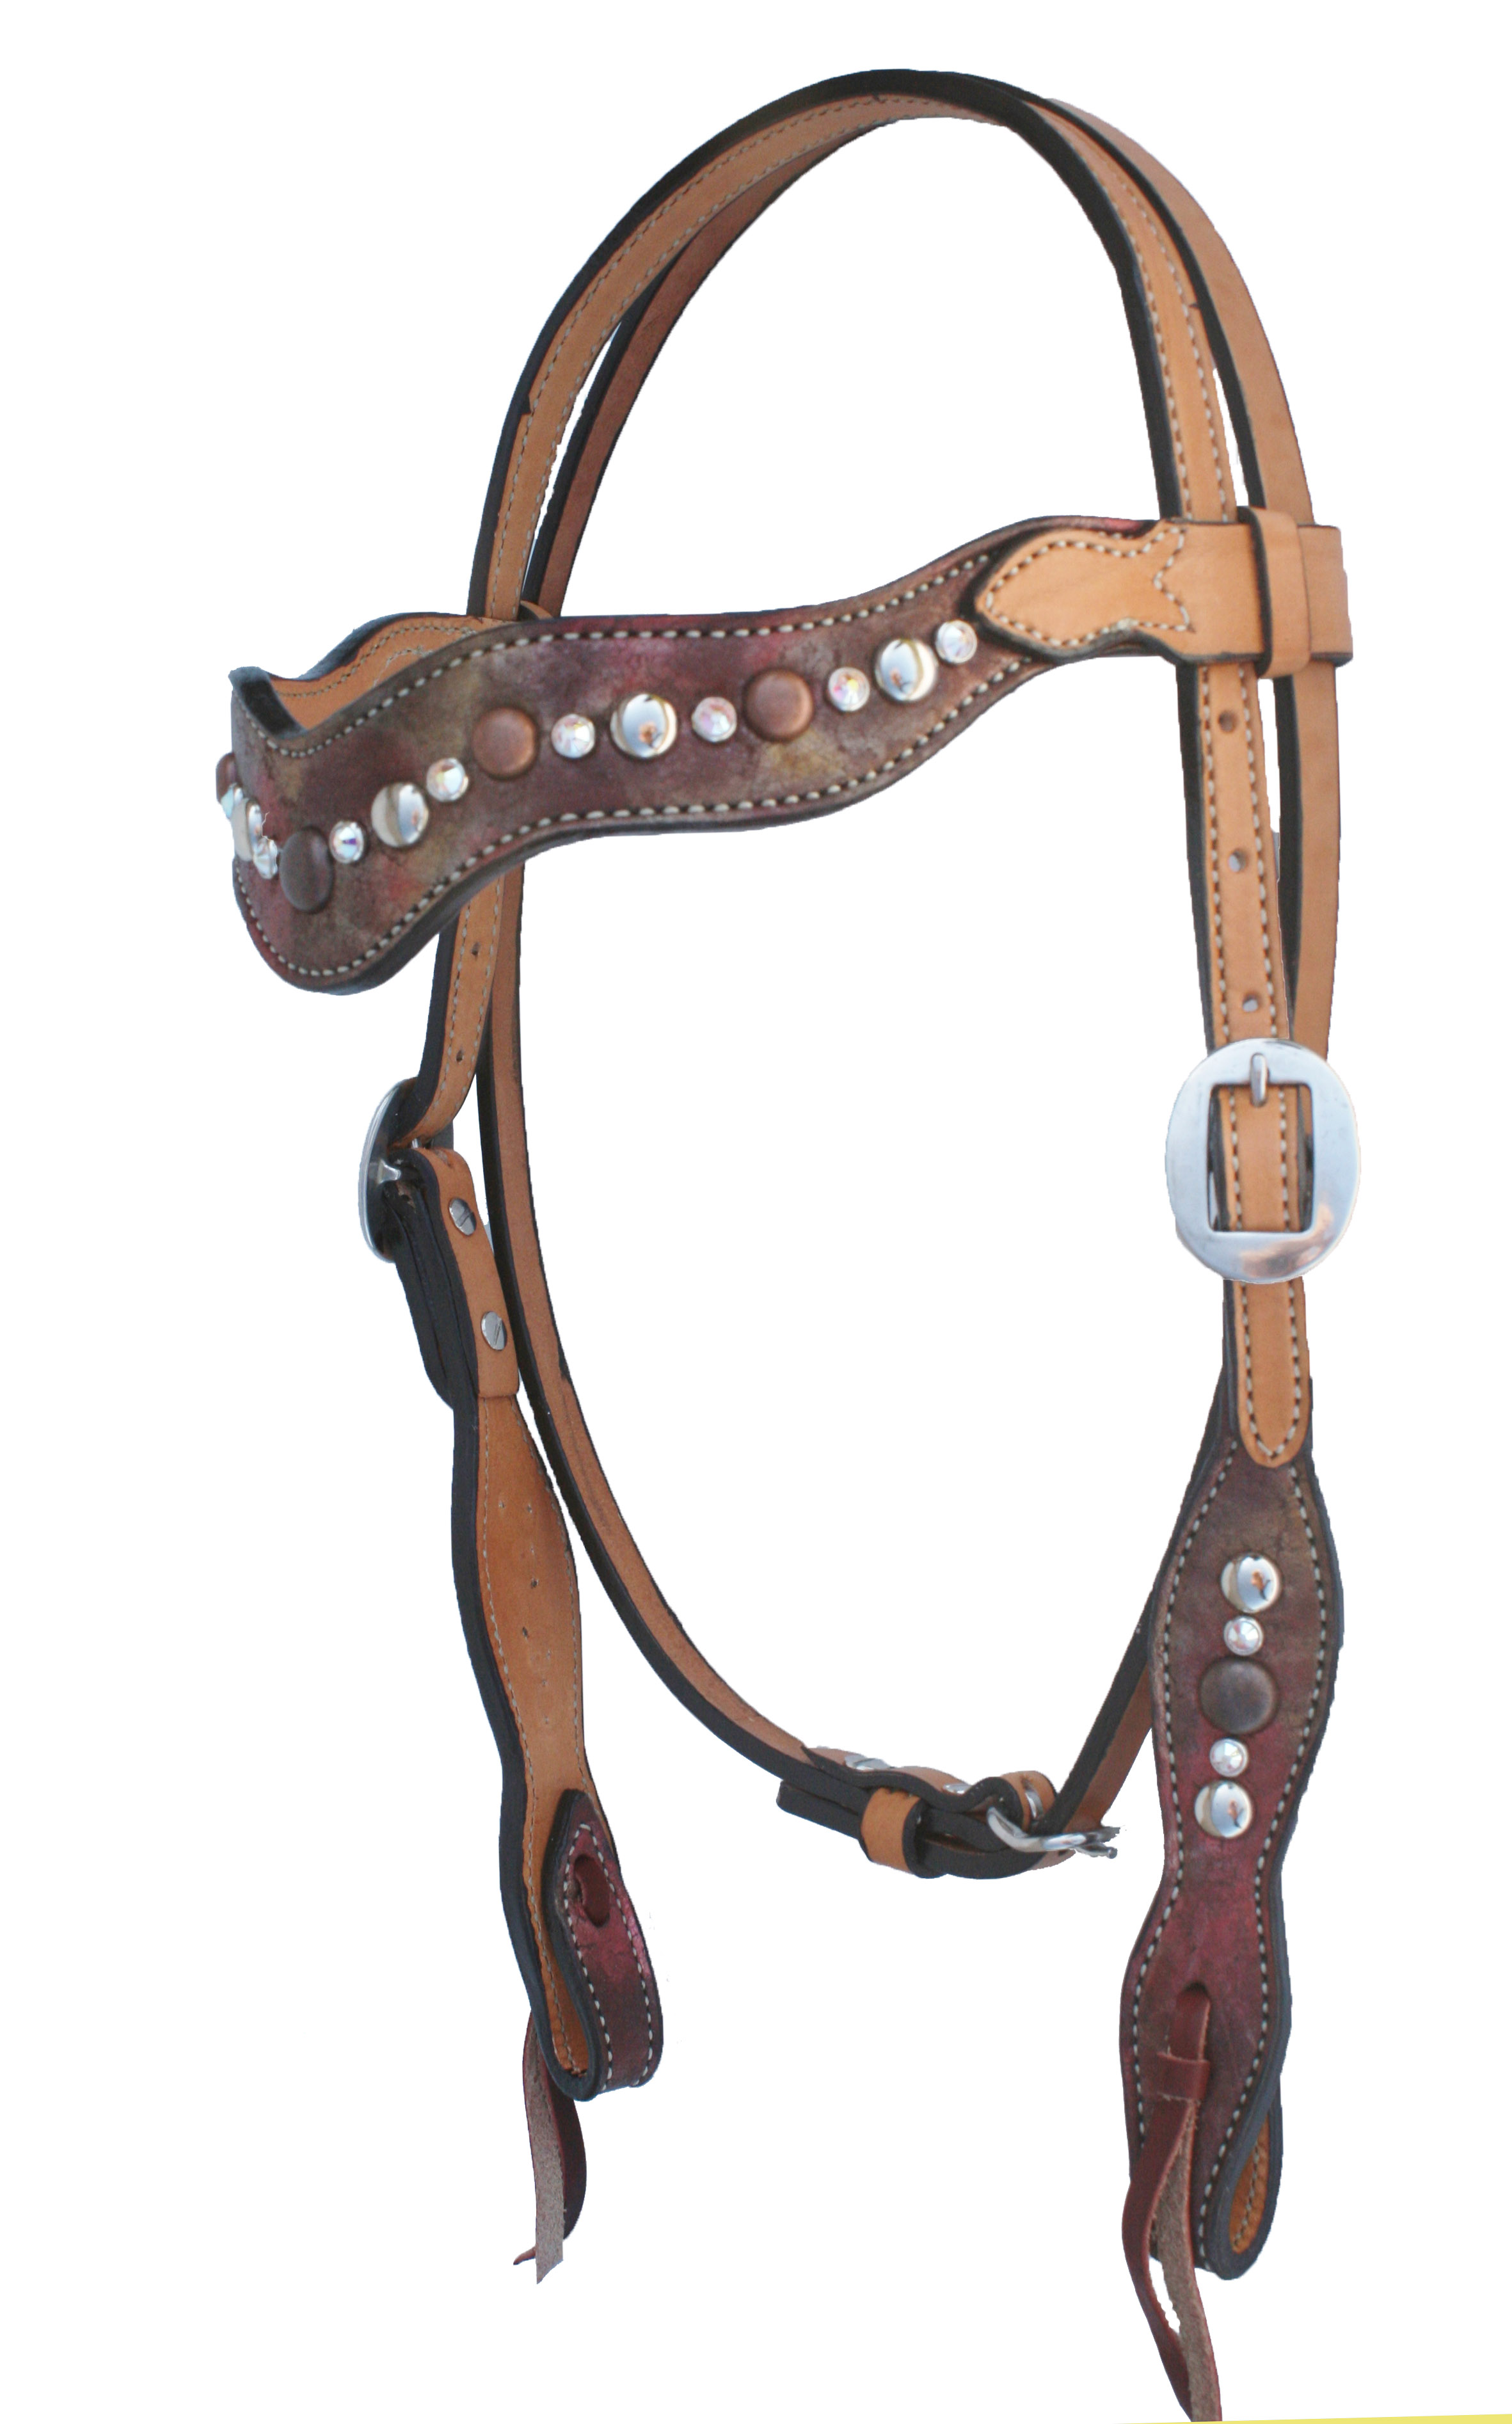 COPPER METALLIC WAVE STYLE HEADSTALL